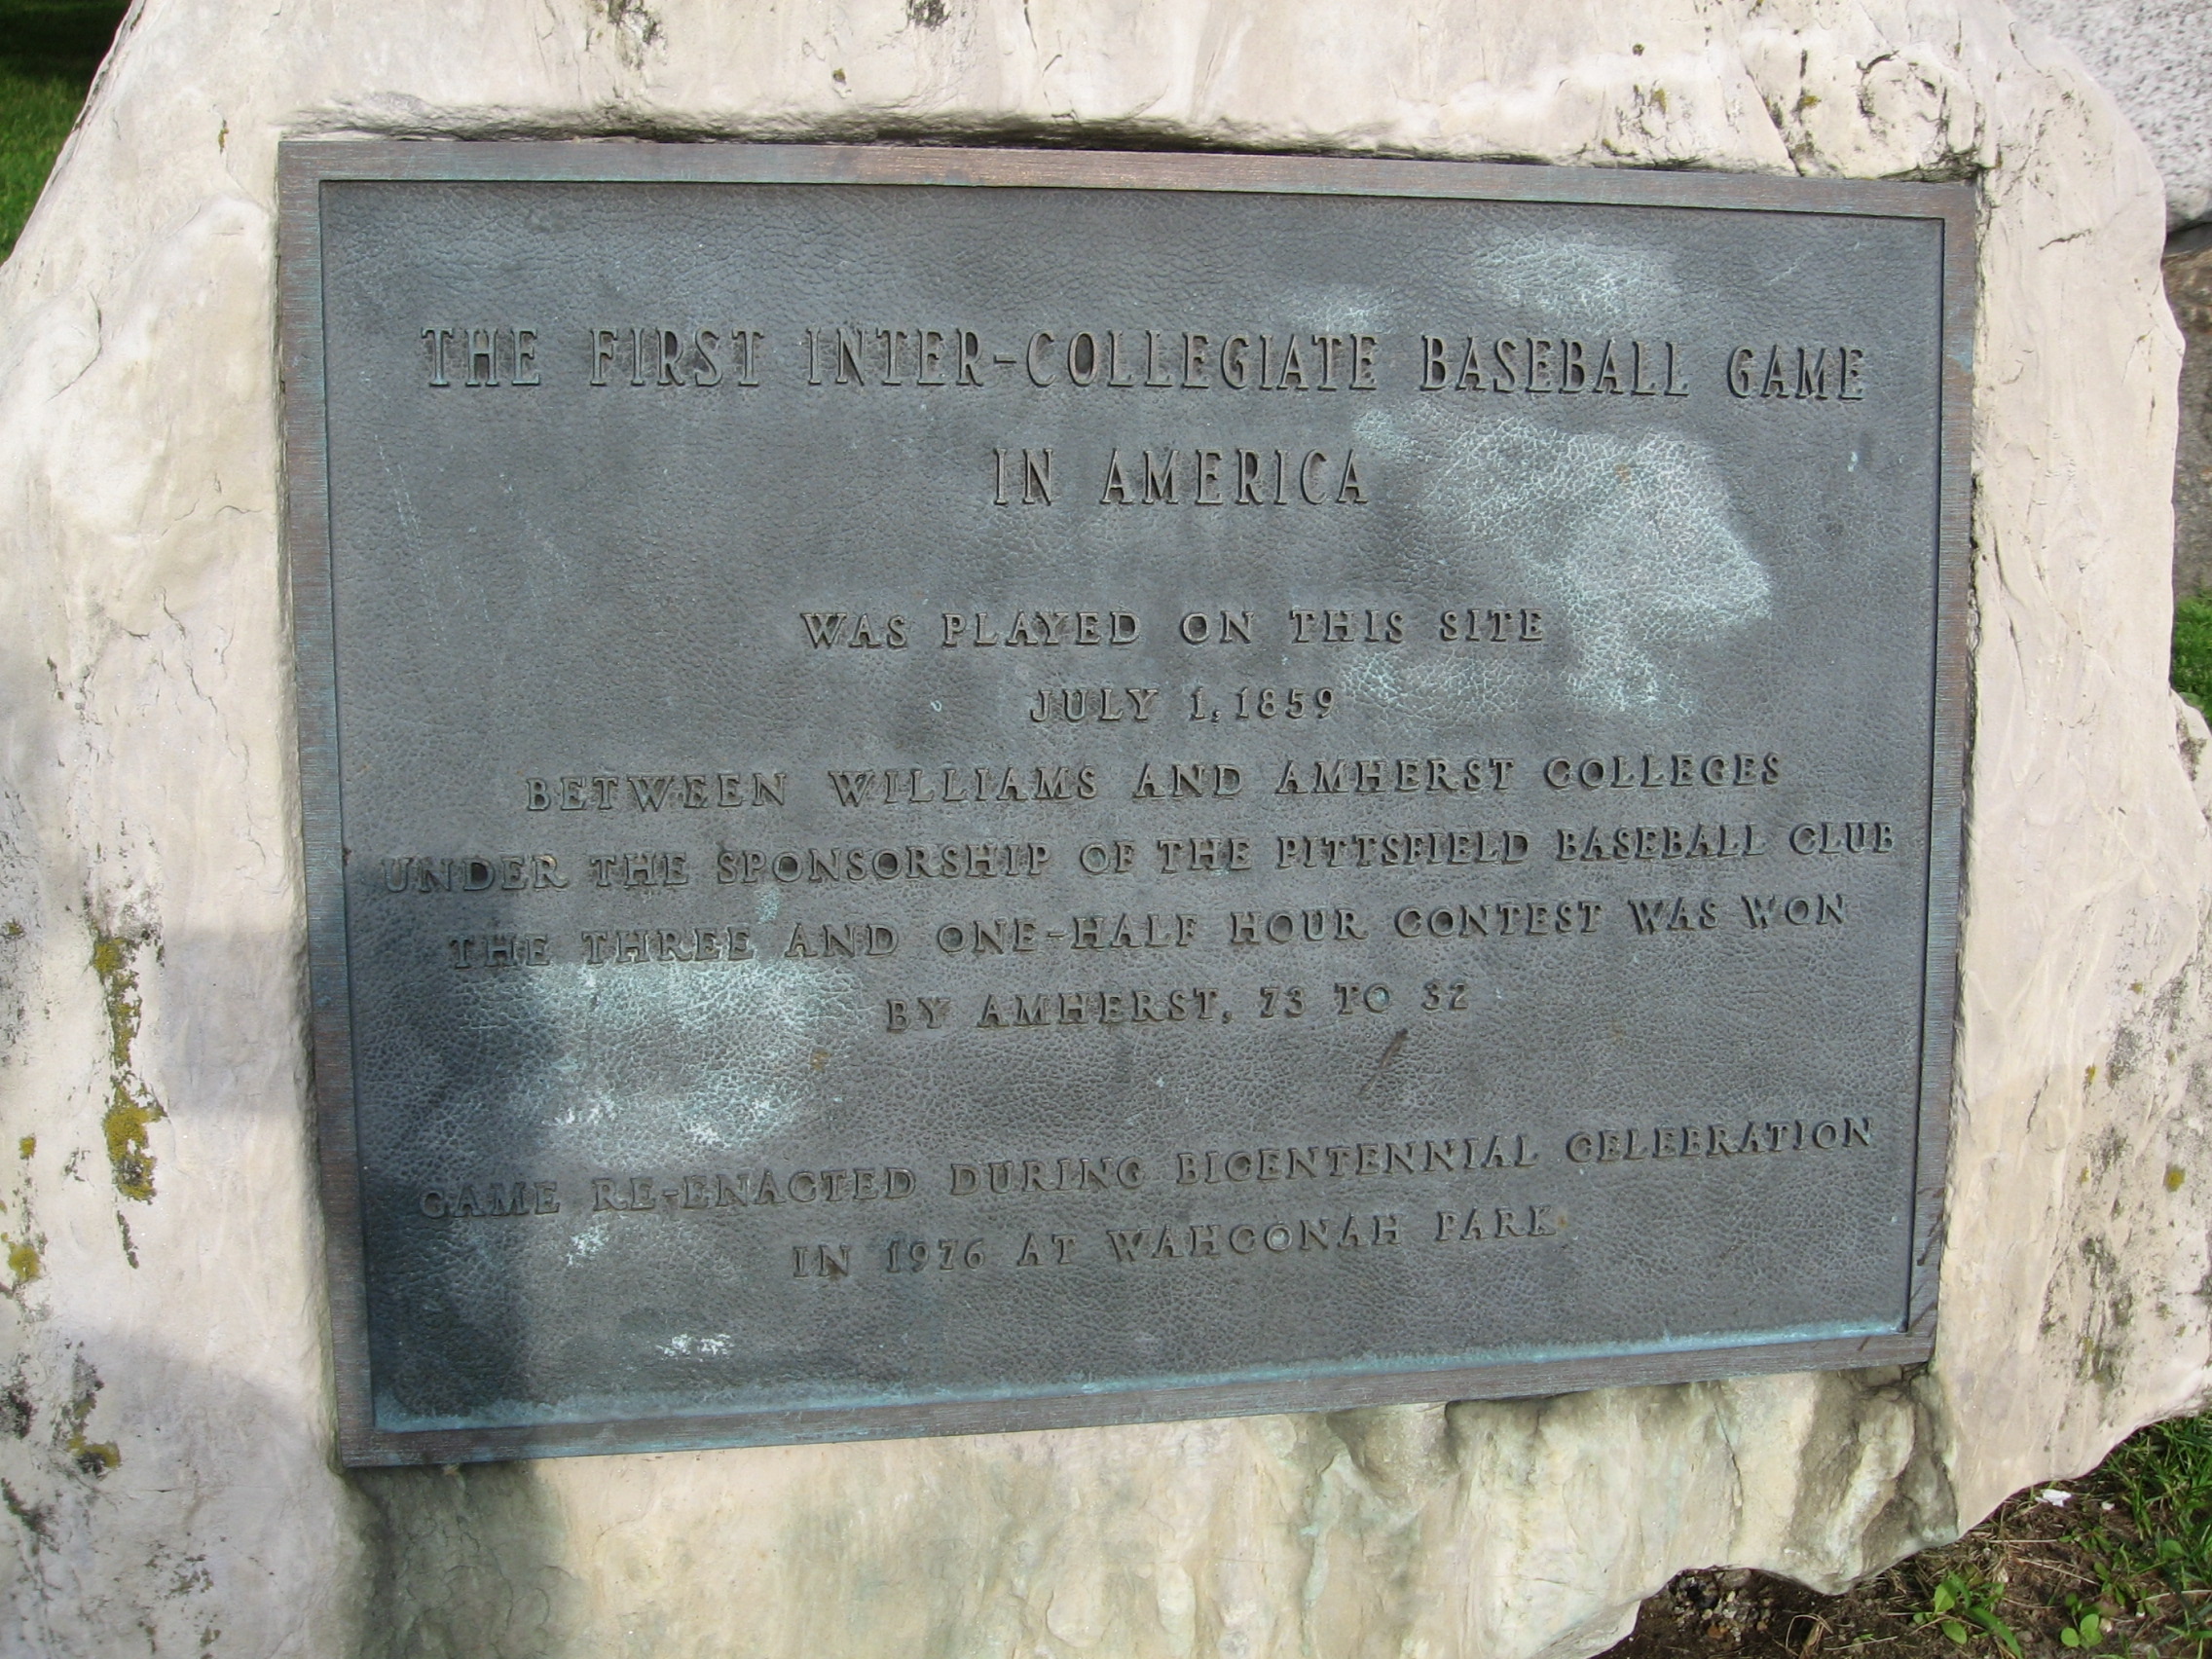 The First Inter-Collegiate Baseball Game Marker